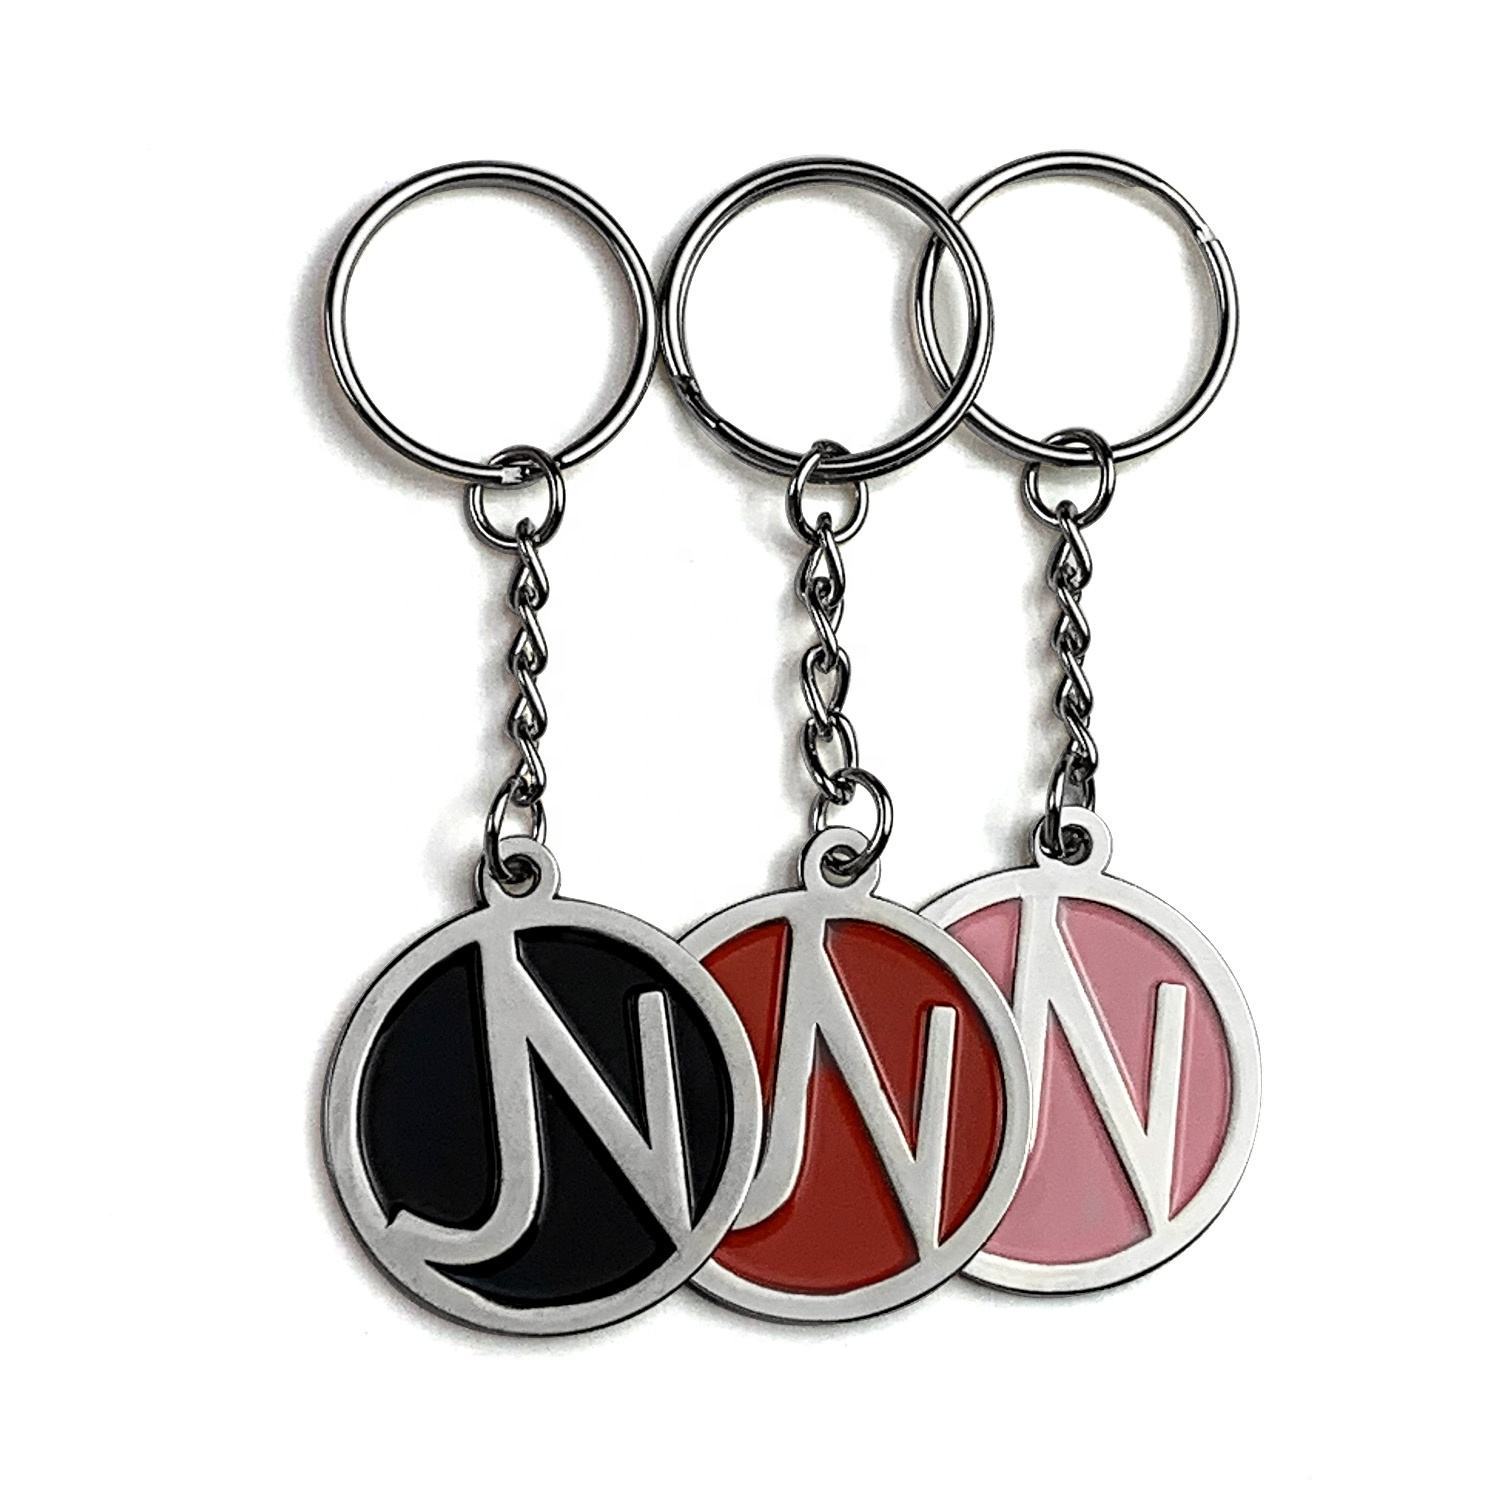 Decorative Accessories Colored Metal Gift Souvenir Enamel Keychain Ker ring Custom Key Chain